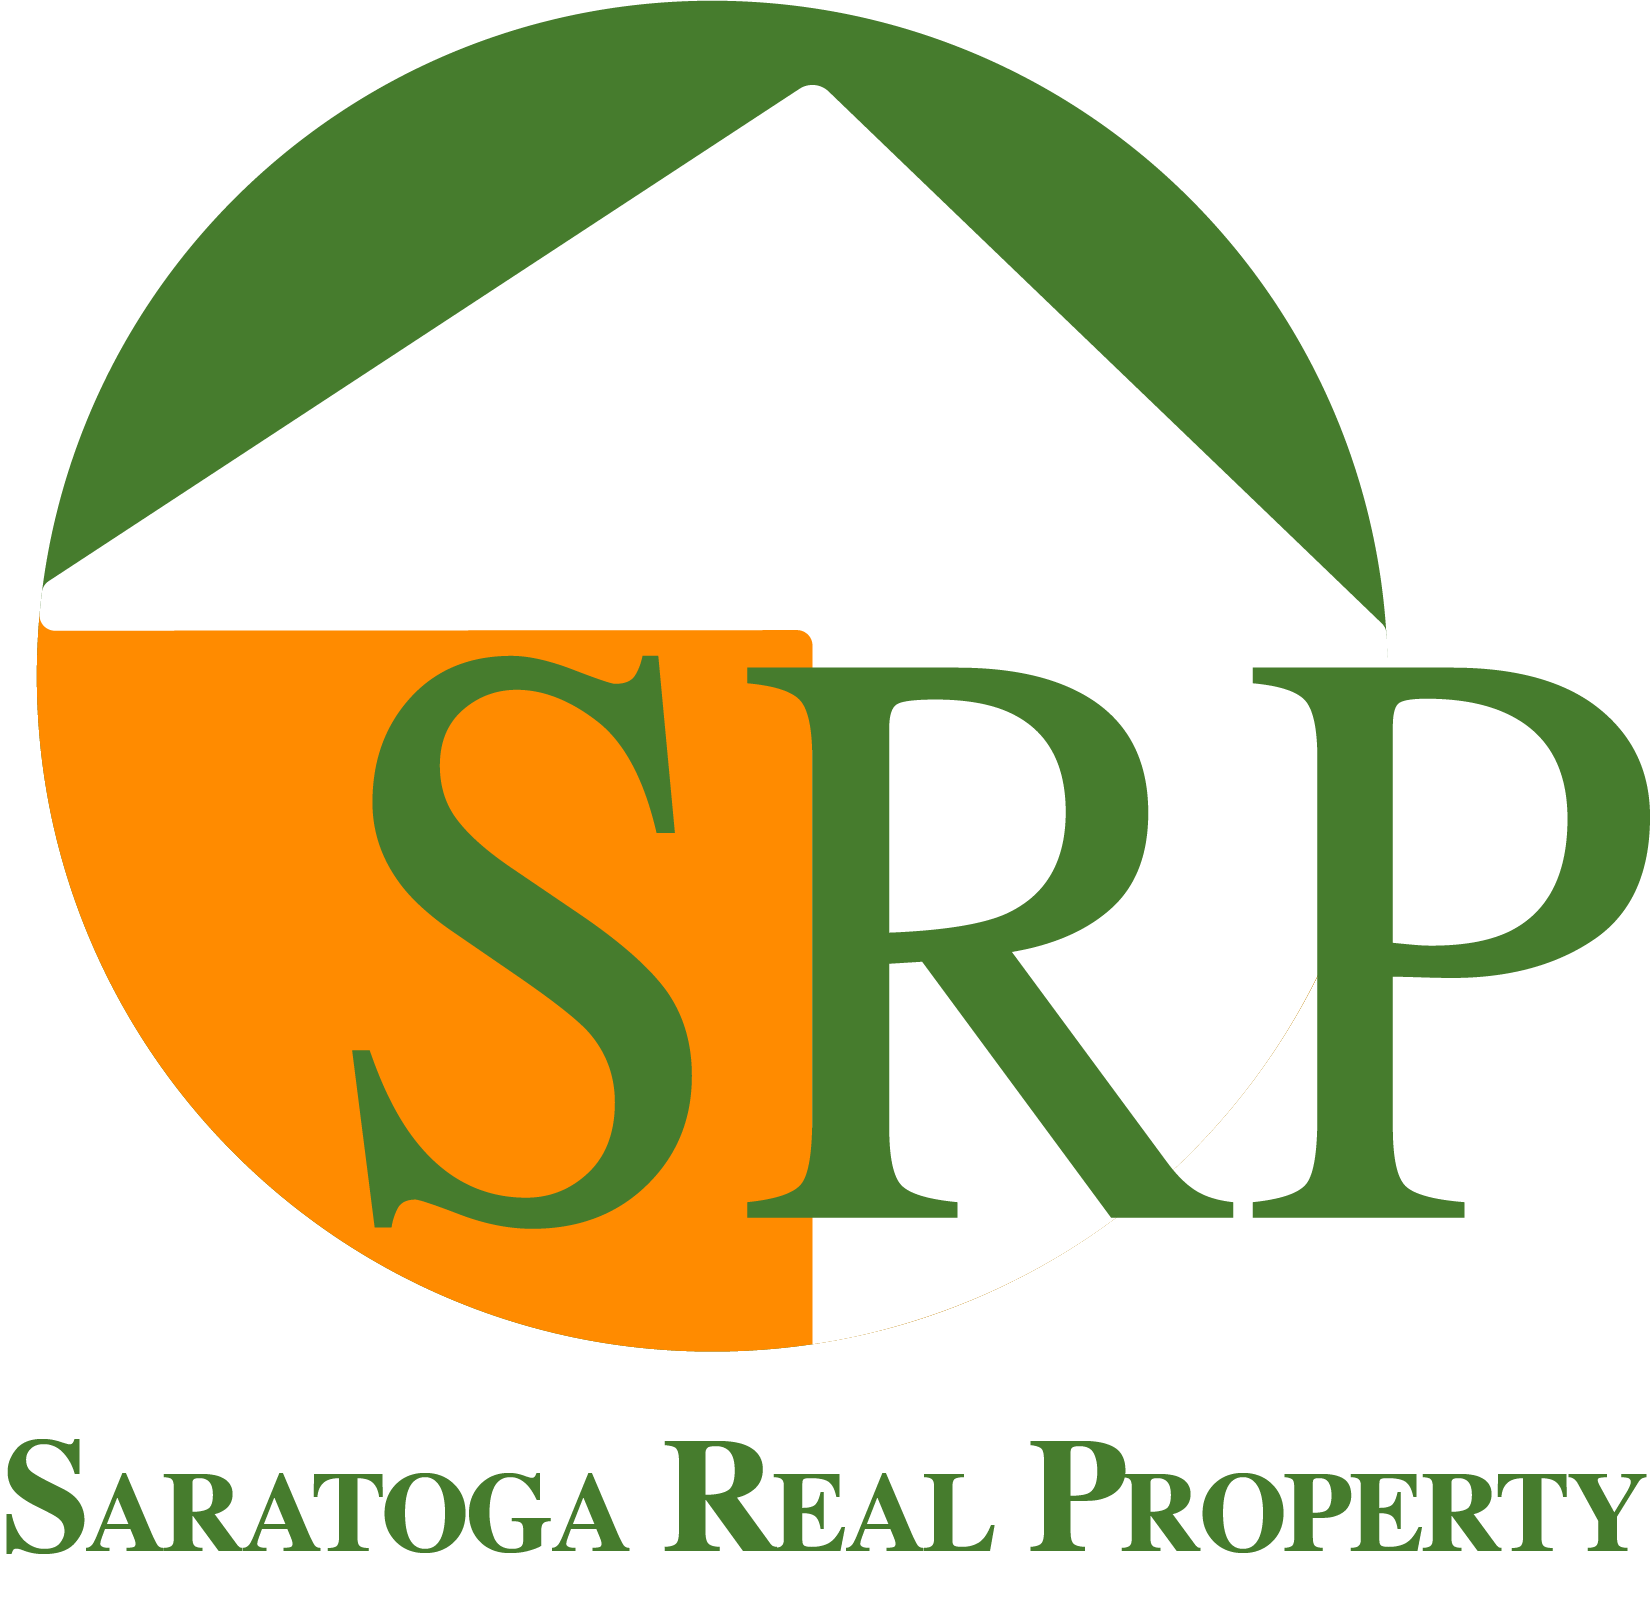 Saratoga Real Property